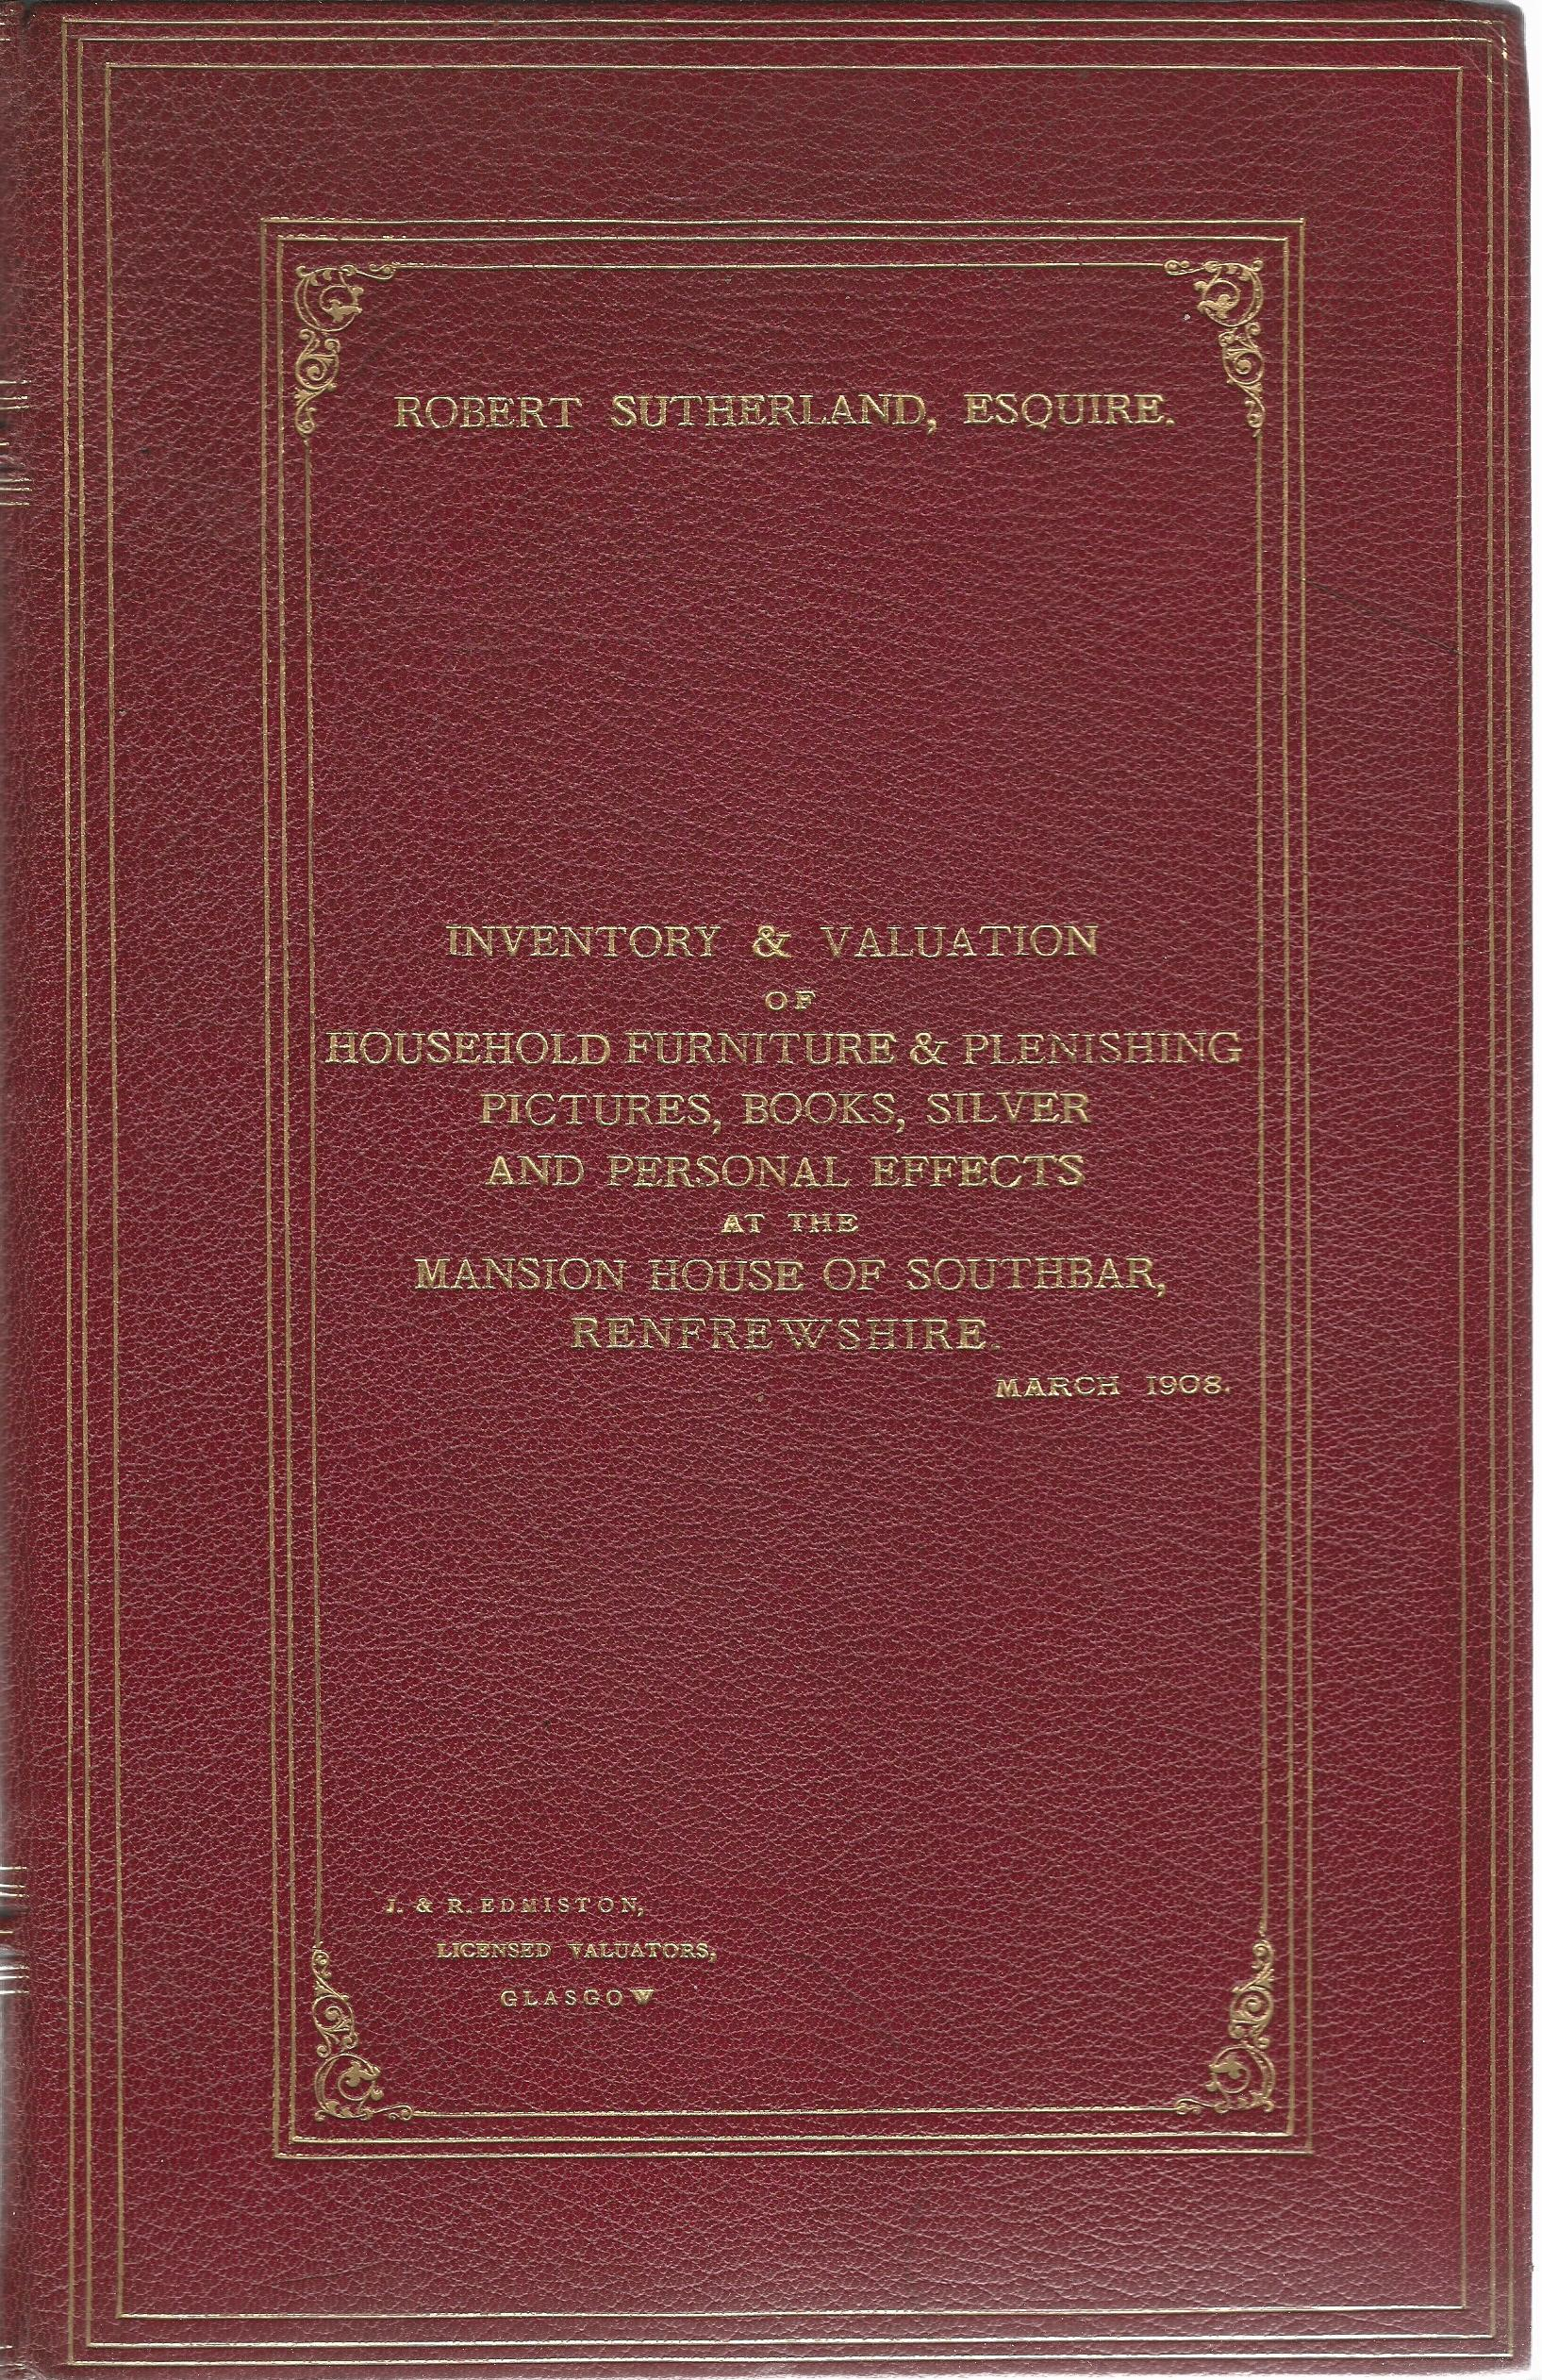 Image for Inventory & Valuation of Houshold Furniture & Plenishing, Pictures, Books, Silver and Personal Effects at the Masion House of Southbar, Renfrewshire March 1908.